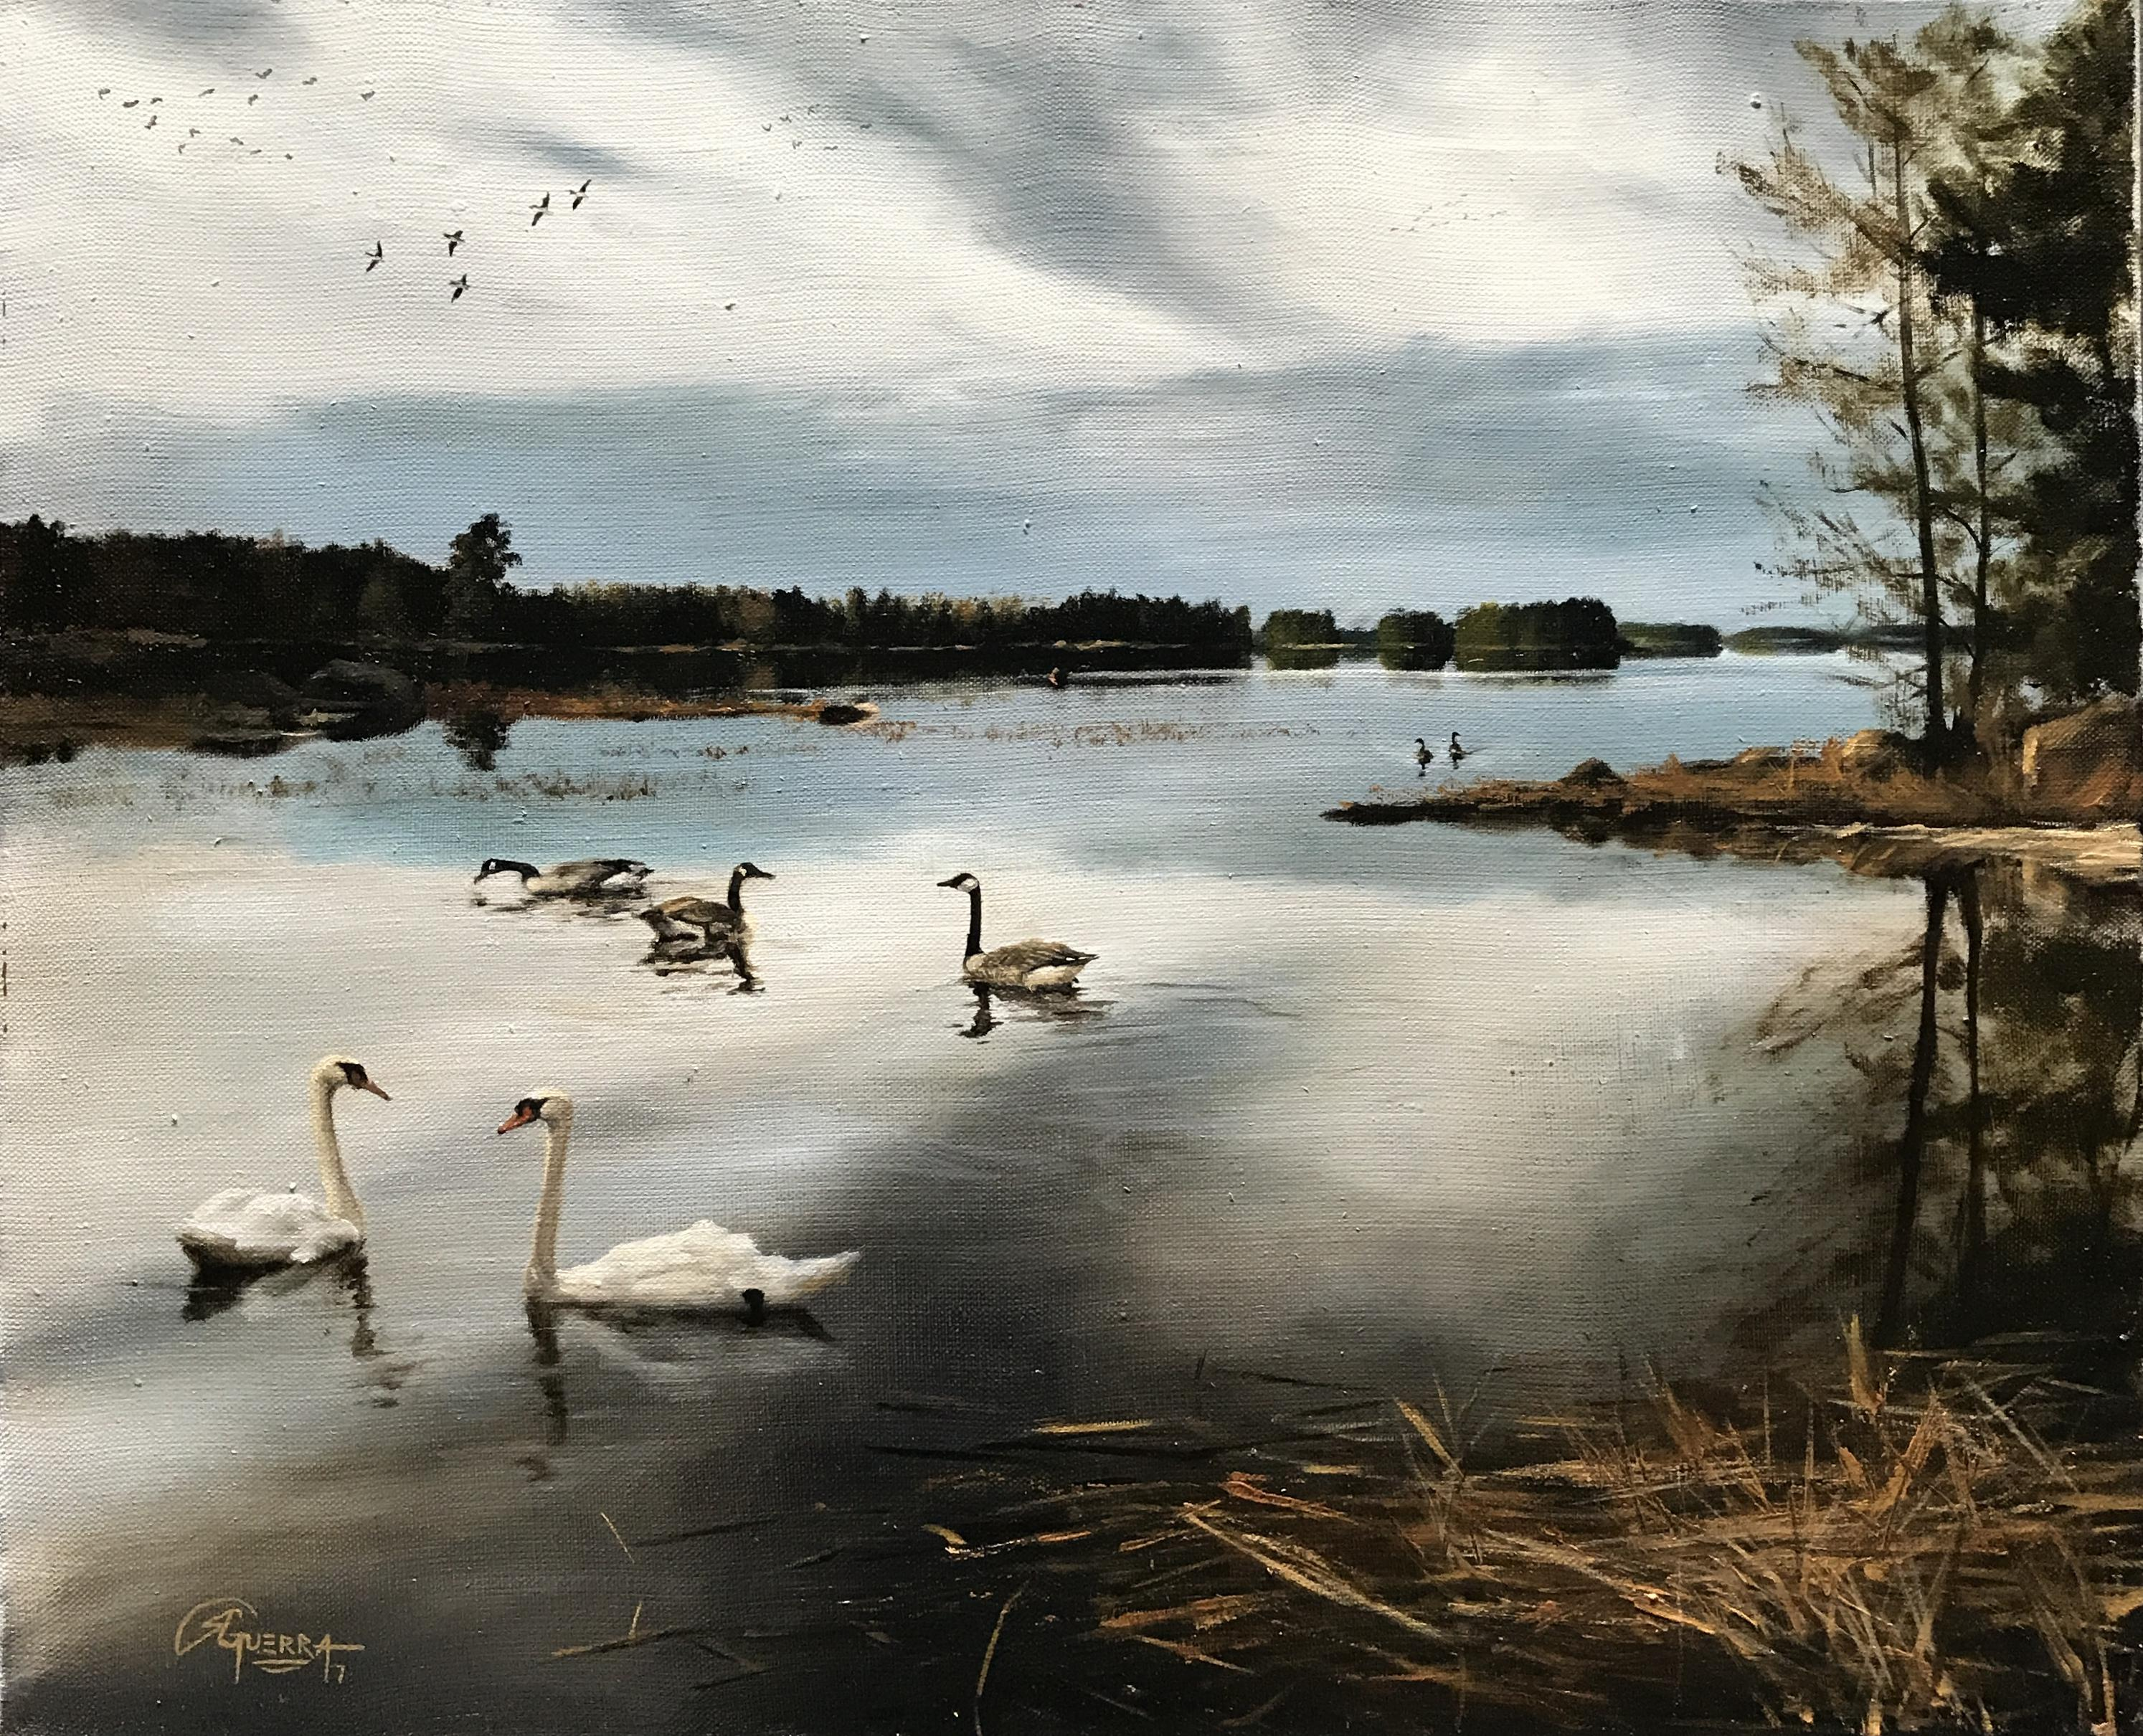 A Lake in Finland in Late Winter/Early Spring, Rafael Guerra Painting